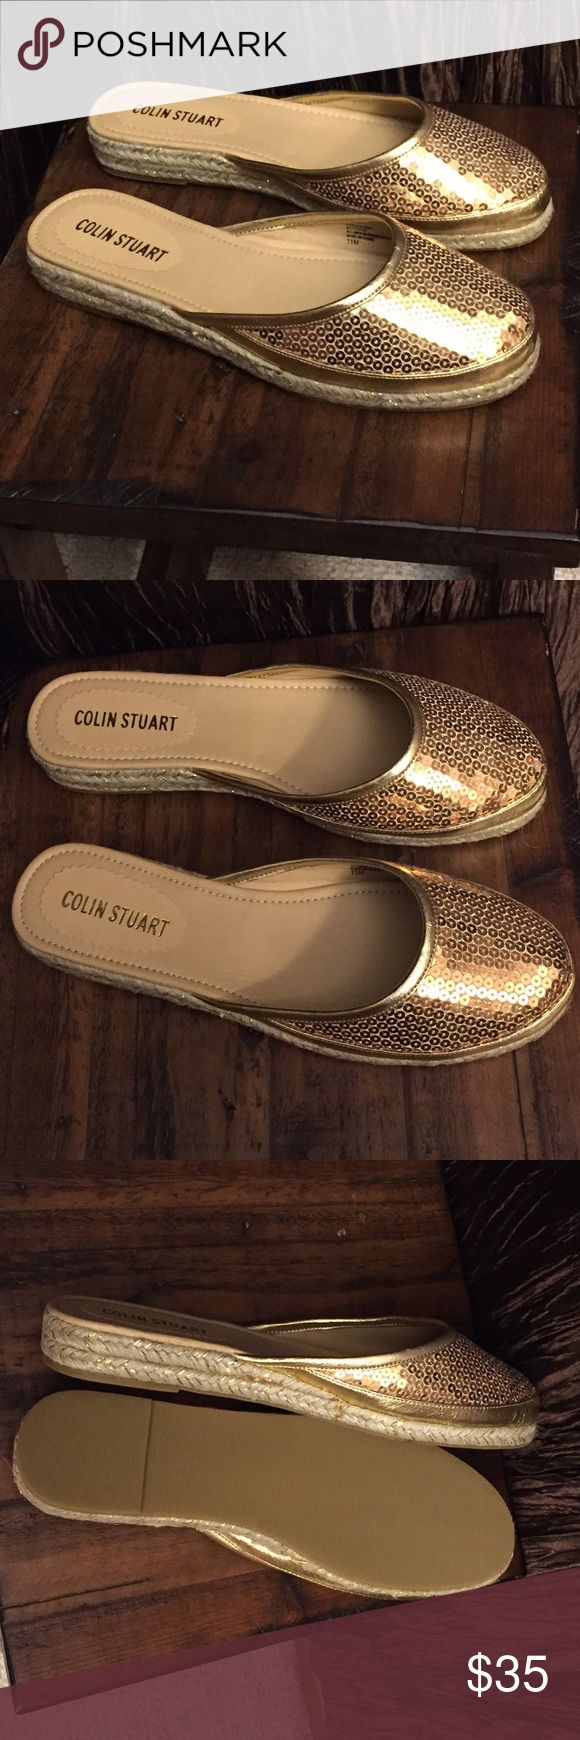 Colin Stuart Flats Sequin-gold slip on flats! Wanna be fancy without the heels, this is for you!  NWOT, size 11M Colin Stuart Shoes Flats & Loafers